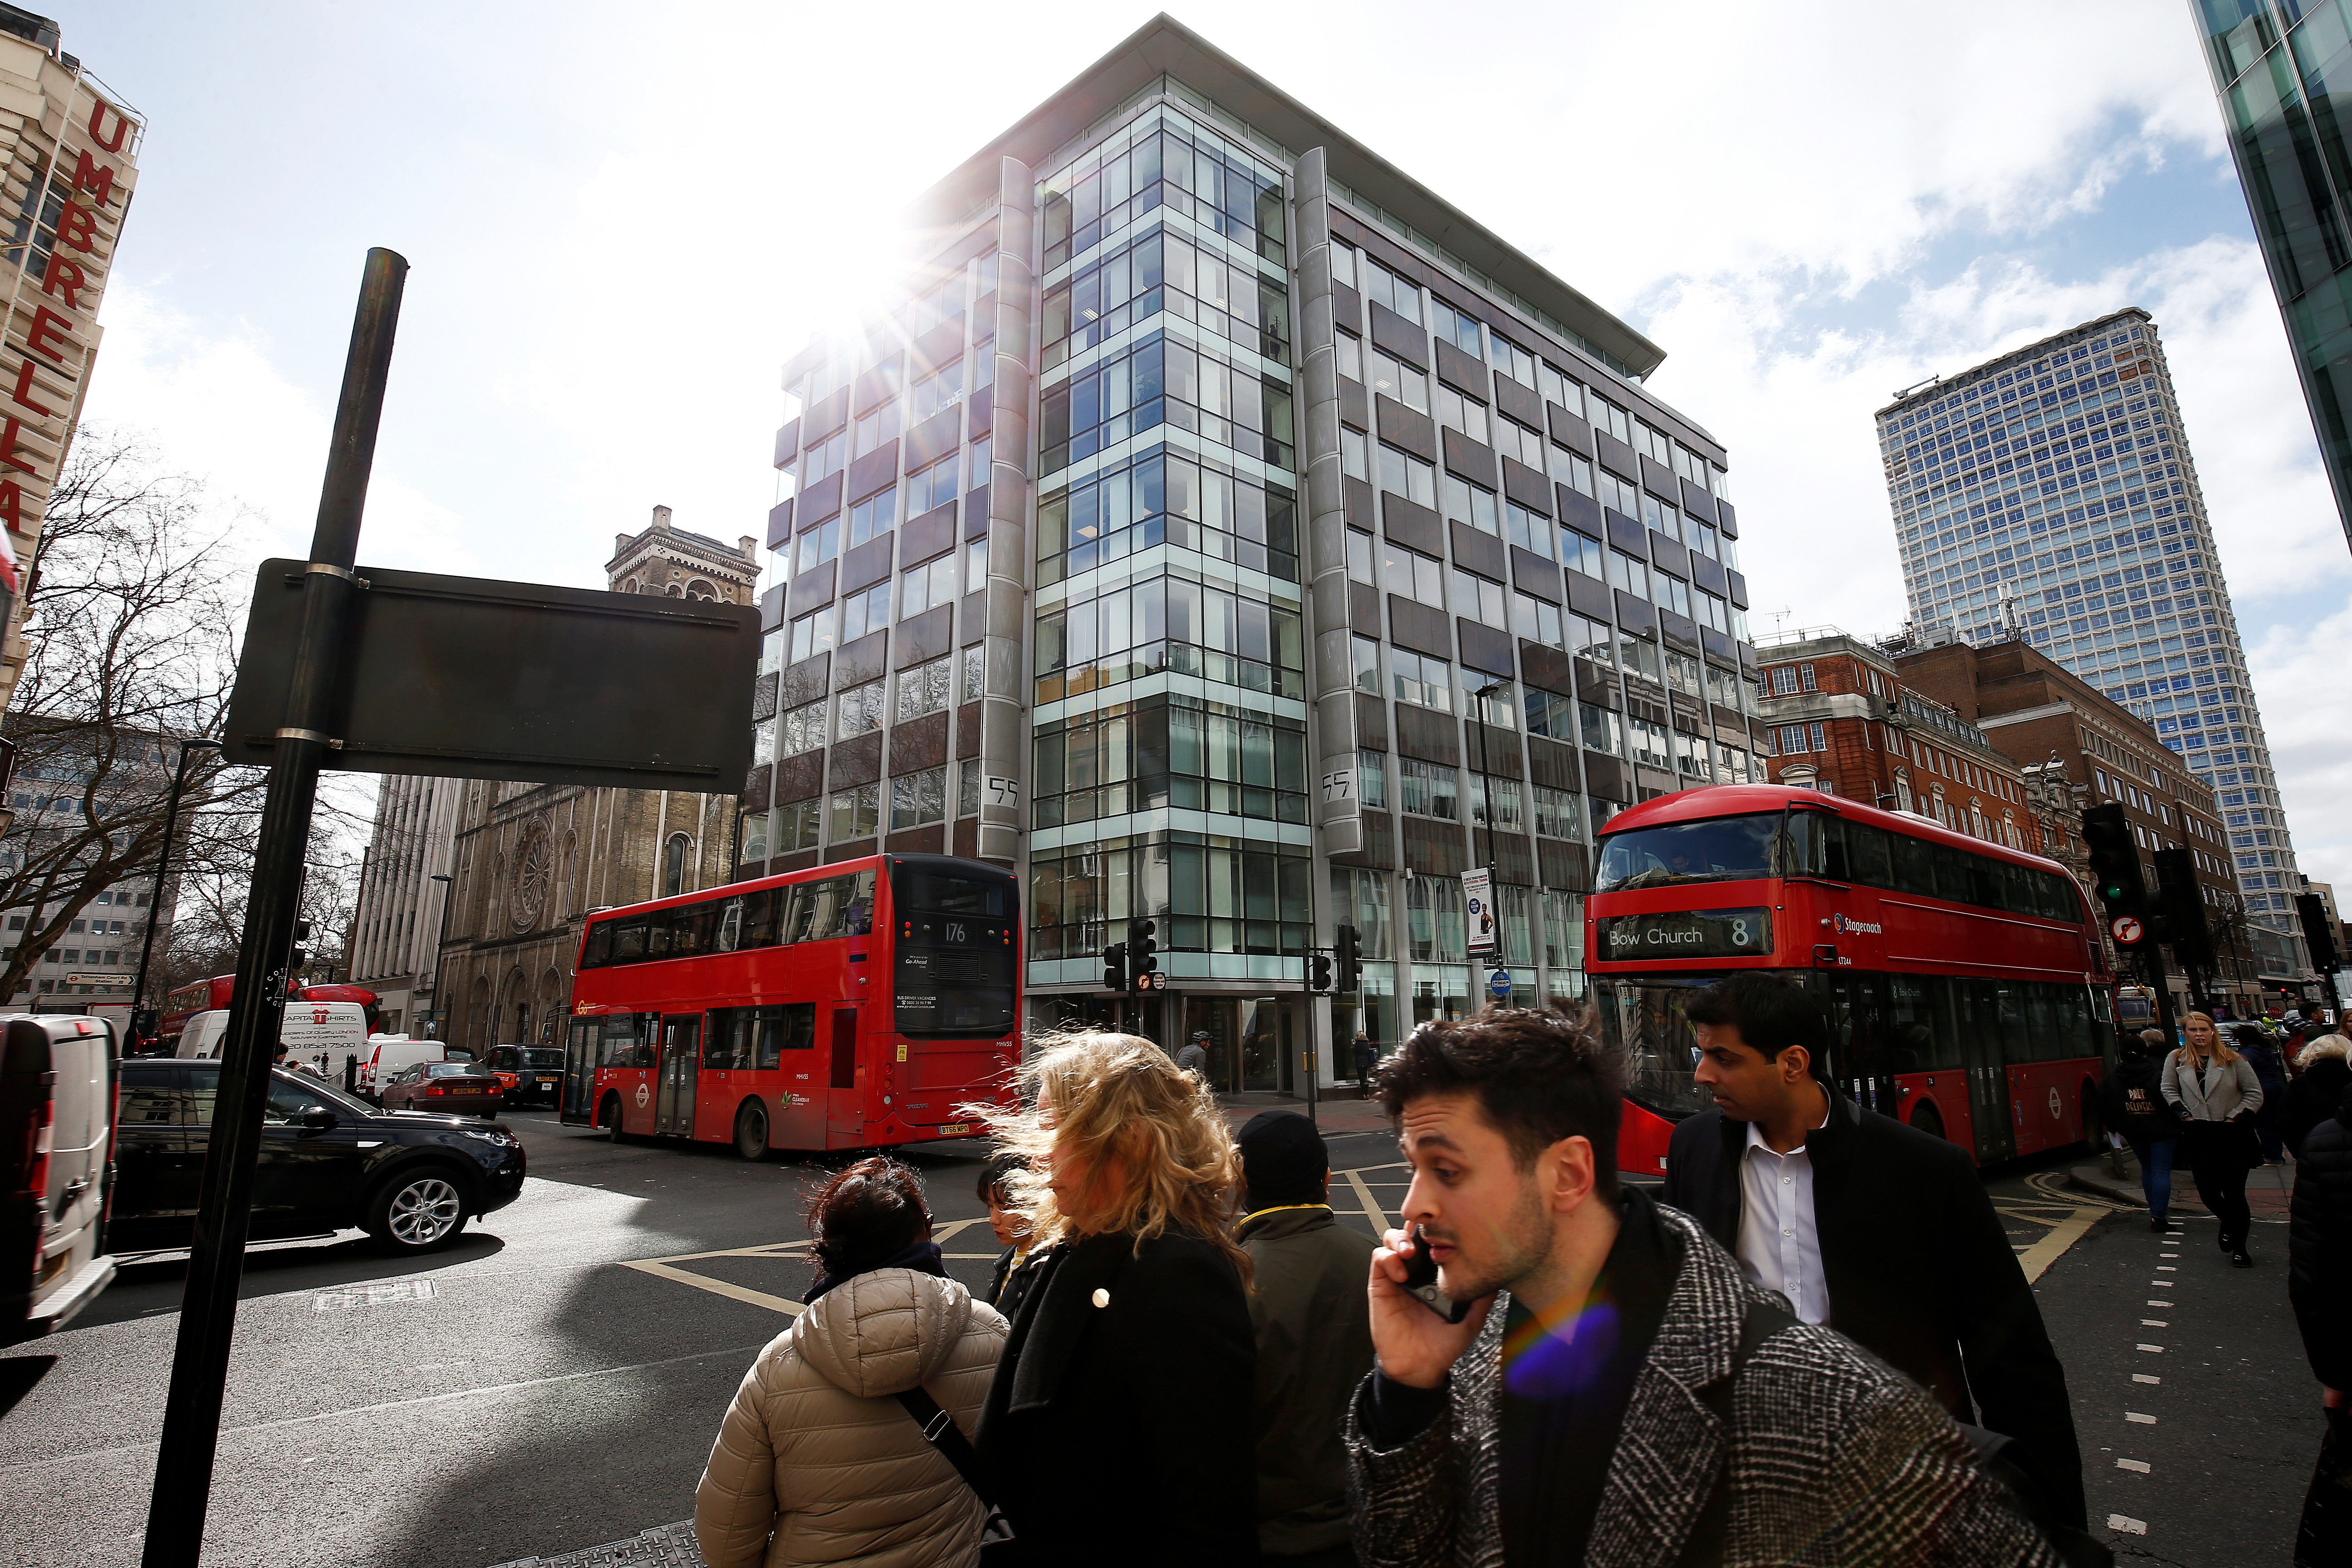 People walk past the building housing the offices of Cambridge Analytica in central London, Britain, March 20, 2018.